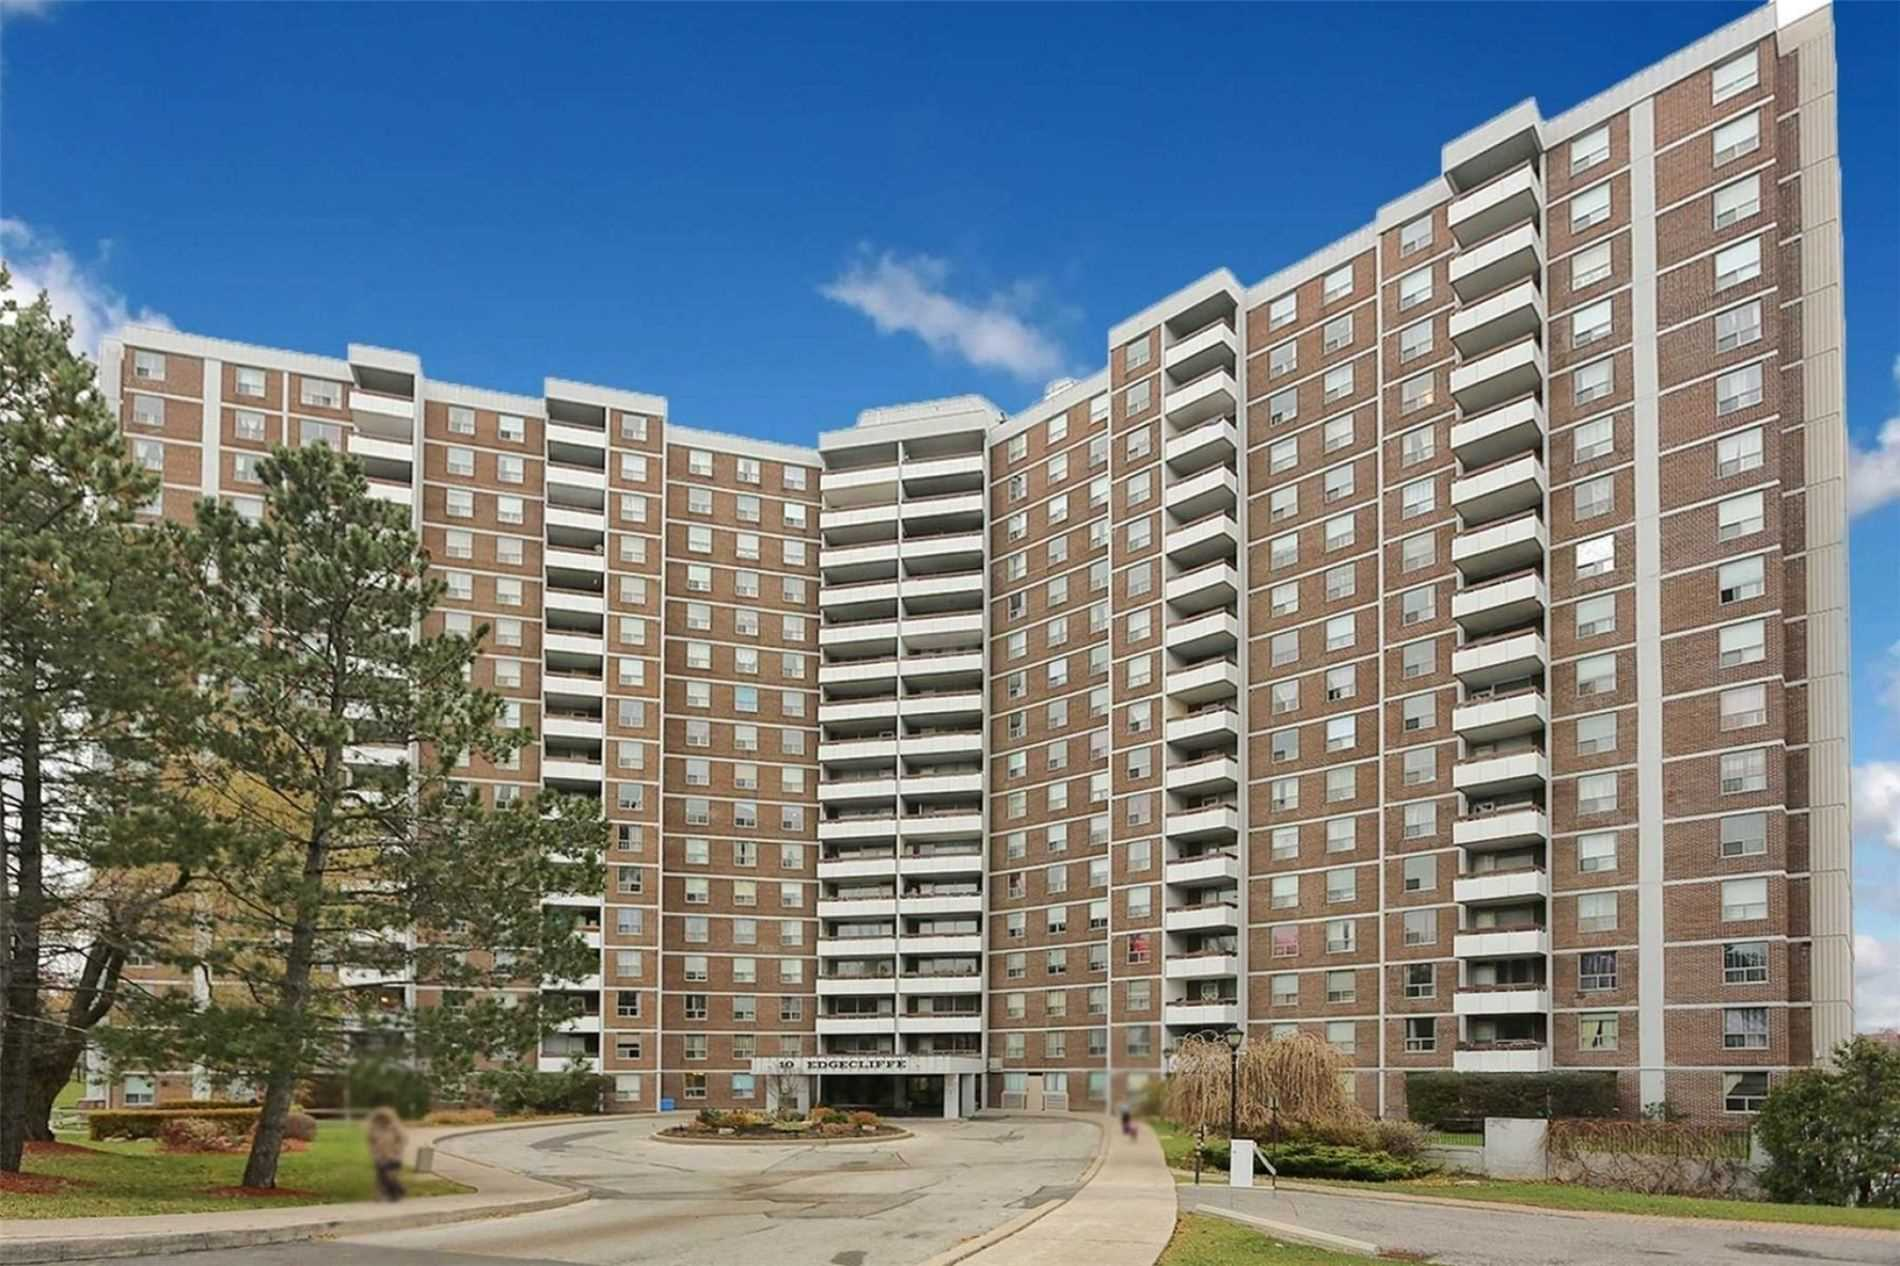 10 Edgecliff Gfwy, Toronto, Ontario M3C 3A3, 3 Bedrooms Bedrooms, 6 Rooms Rooms,2 BathroomsBathrooms,Condo Apt,For Sale,Edgecliff,C5076829